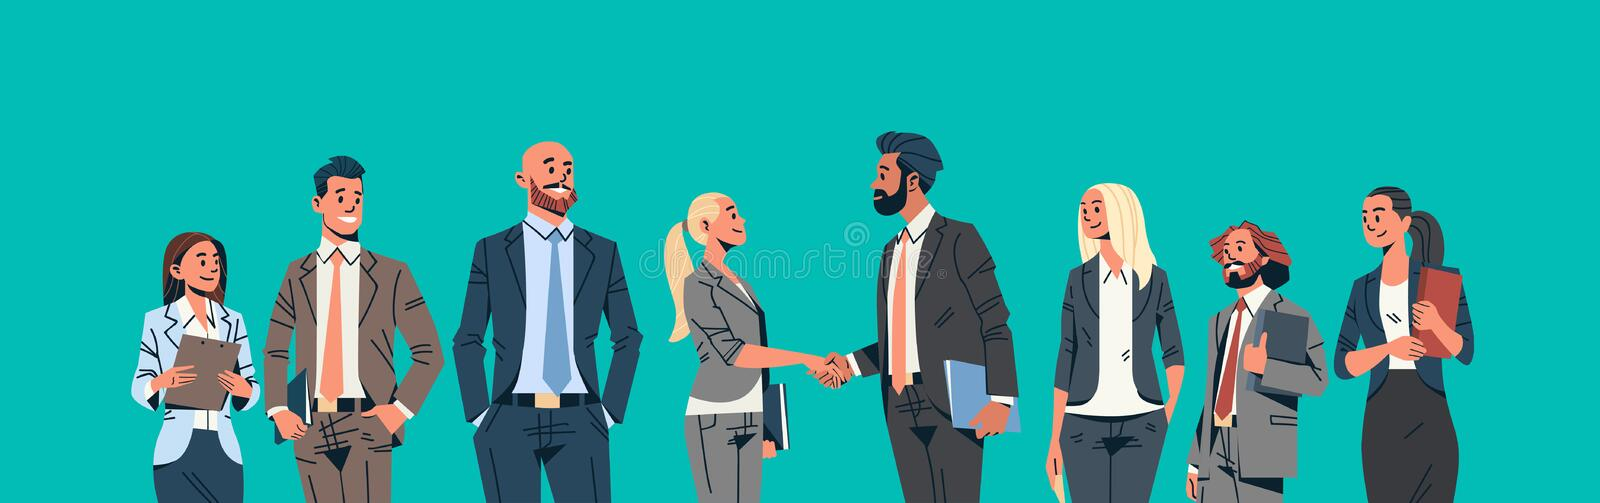 Business people group hand shake agreement communicating concept businessmen women team leader meeting male female. Cartoon character portrait horizontal banner vector illustration